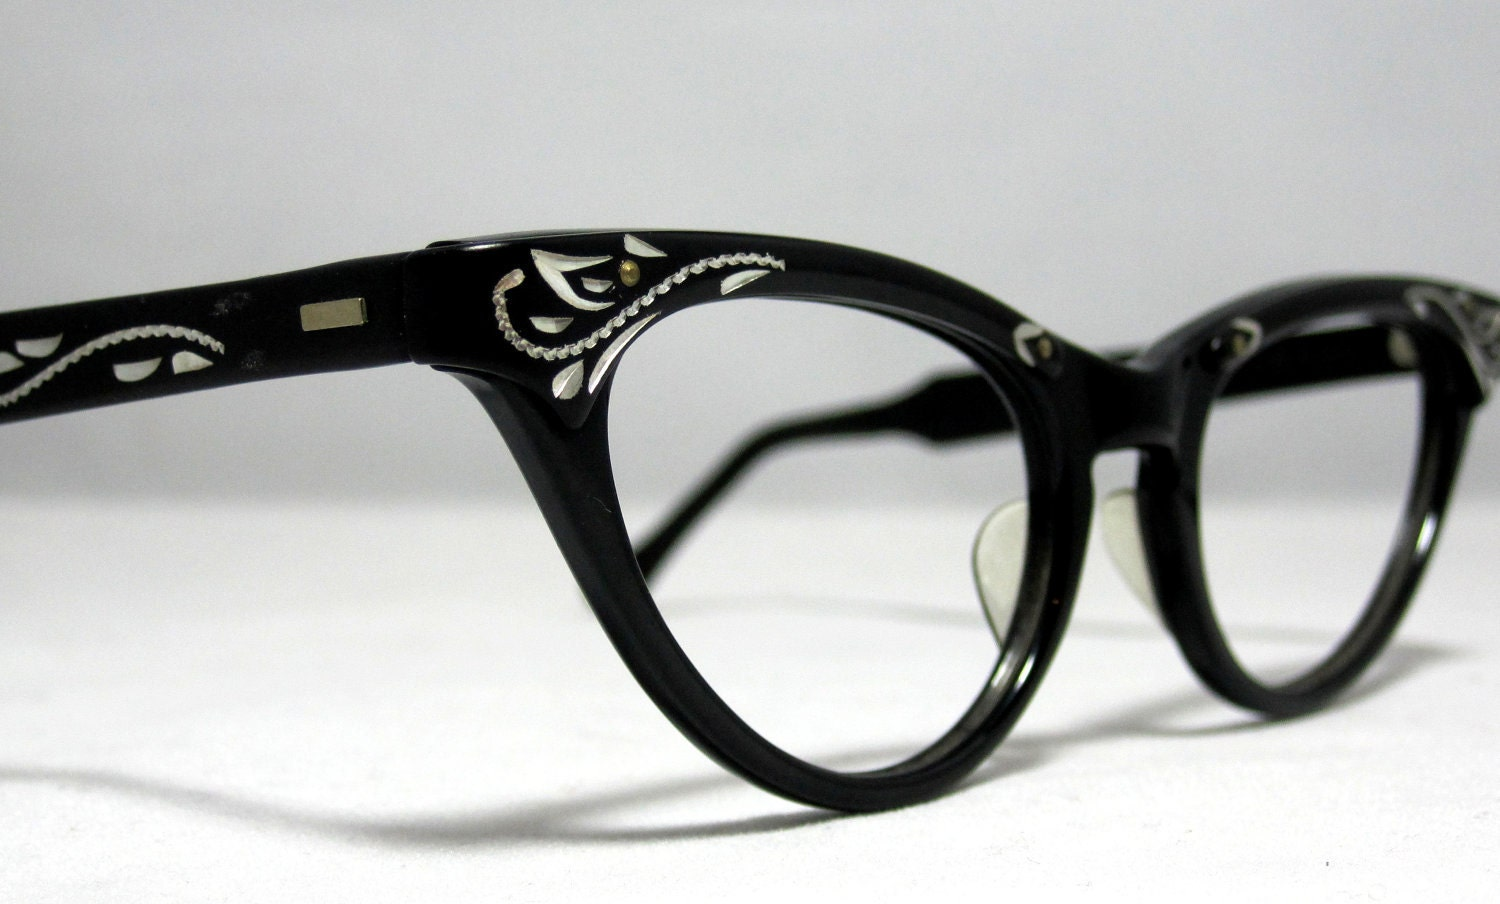 Vintage Eyeglass Frames Cat Eye : Vintage Cat Eye Glasses Frames. Black and Silver with Etched